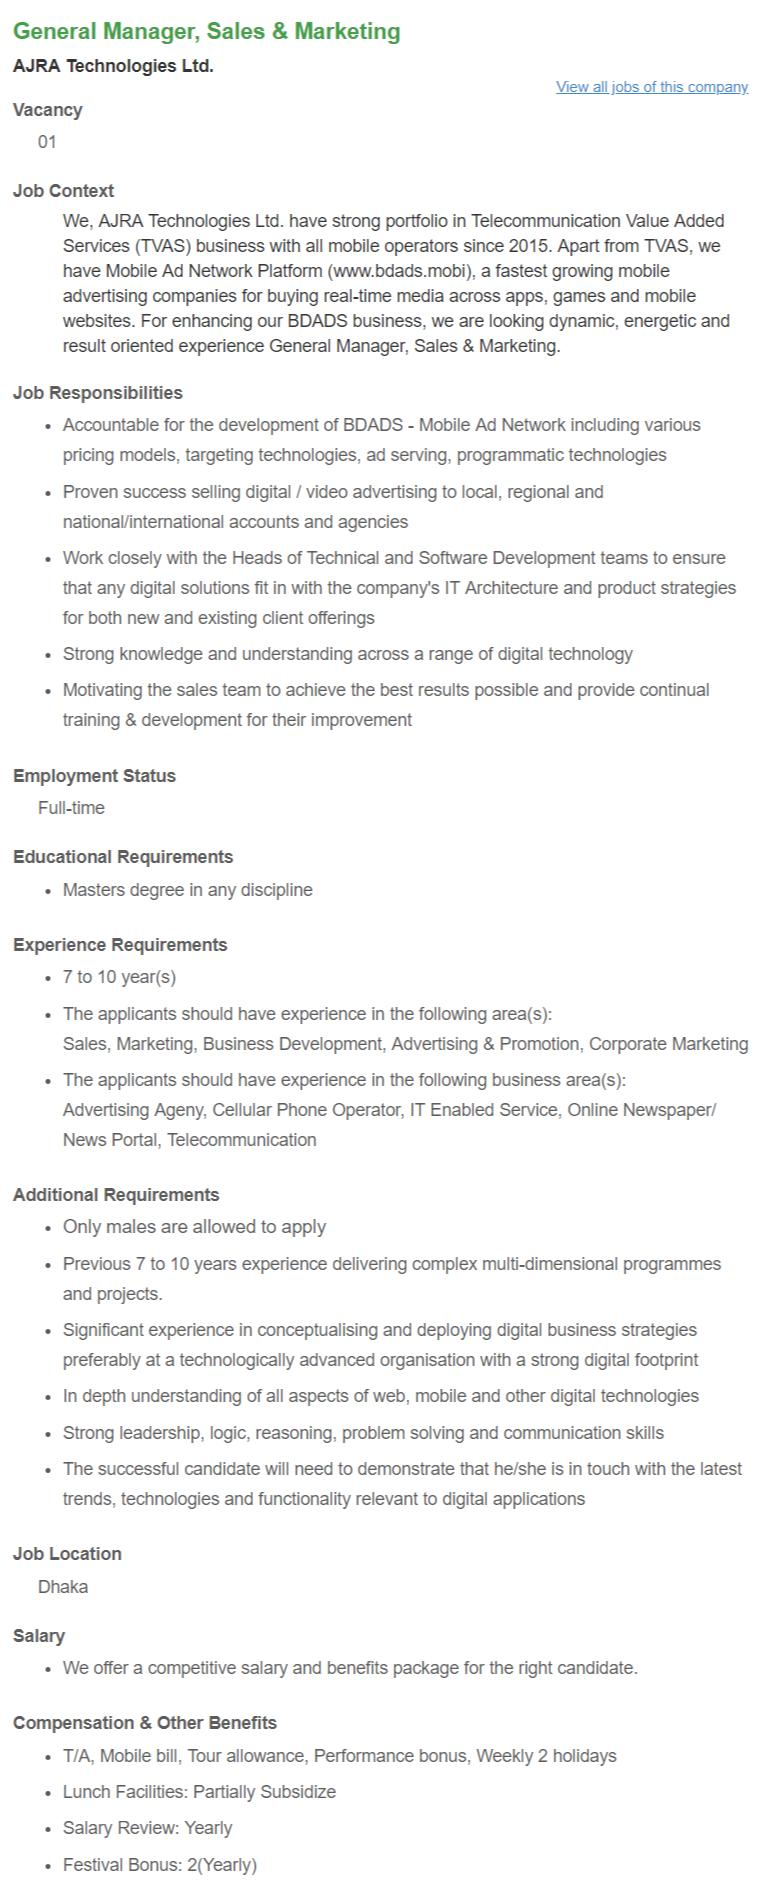 General Manager, Sales & Marketing _ AJRA Technologies Ltd __ Bdjobs.com